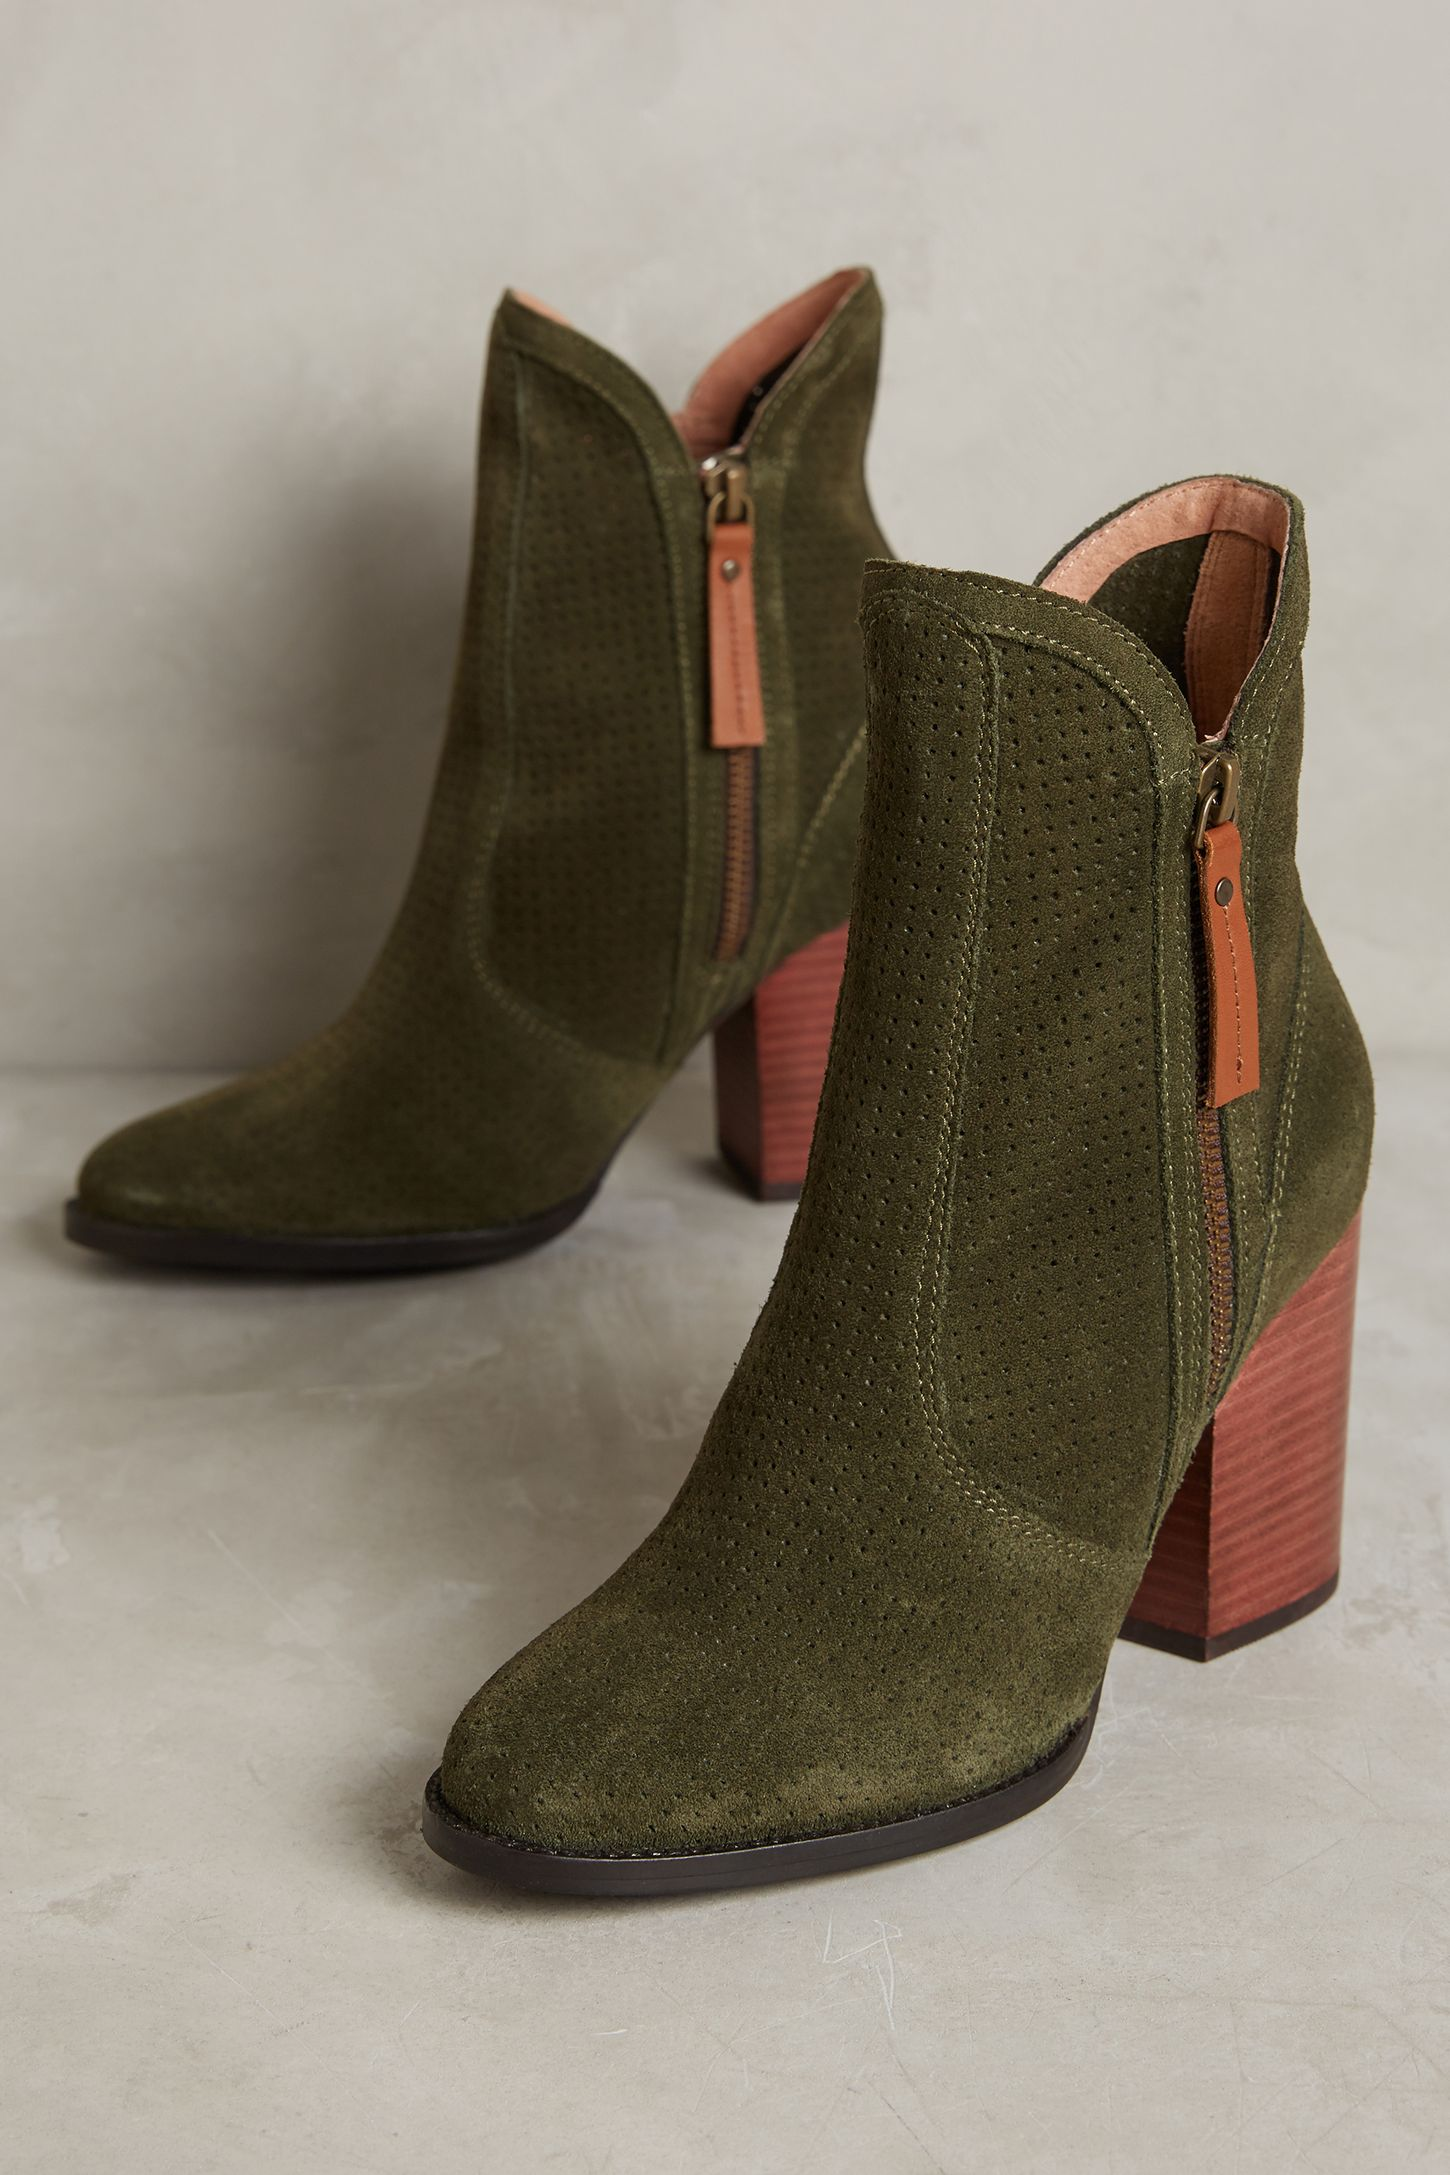 Seychelles Around The World Boots Anthropologie - Where is seychelles in the world